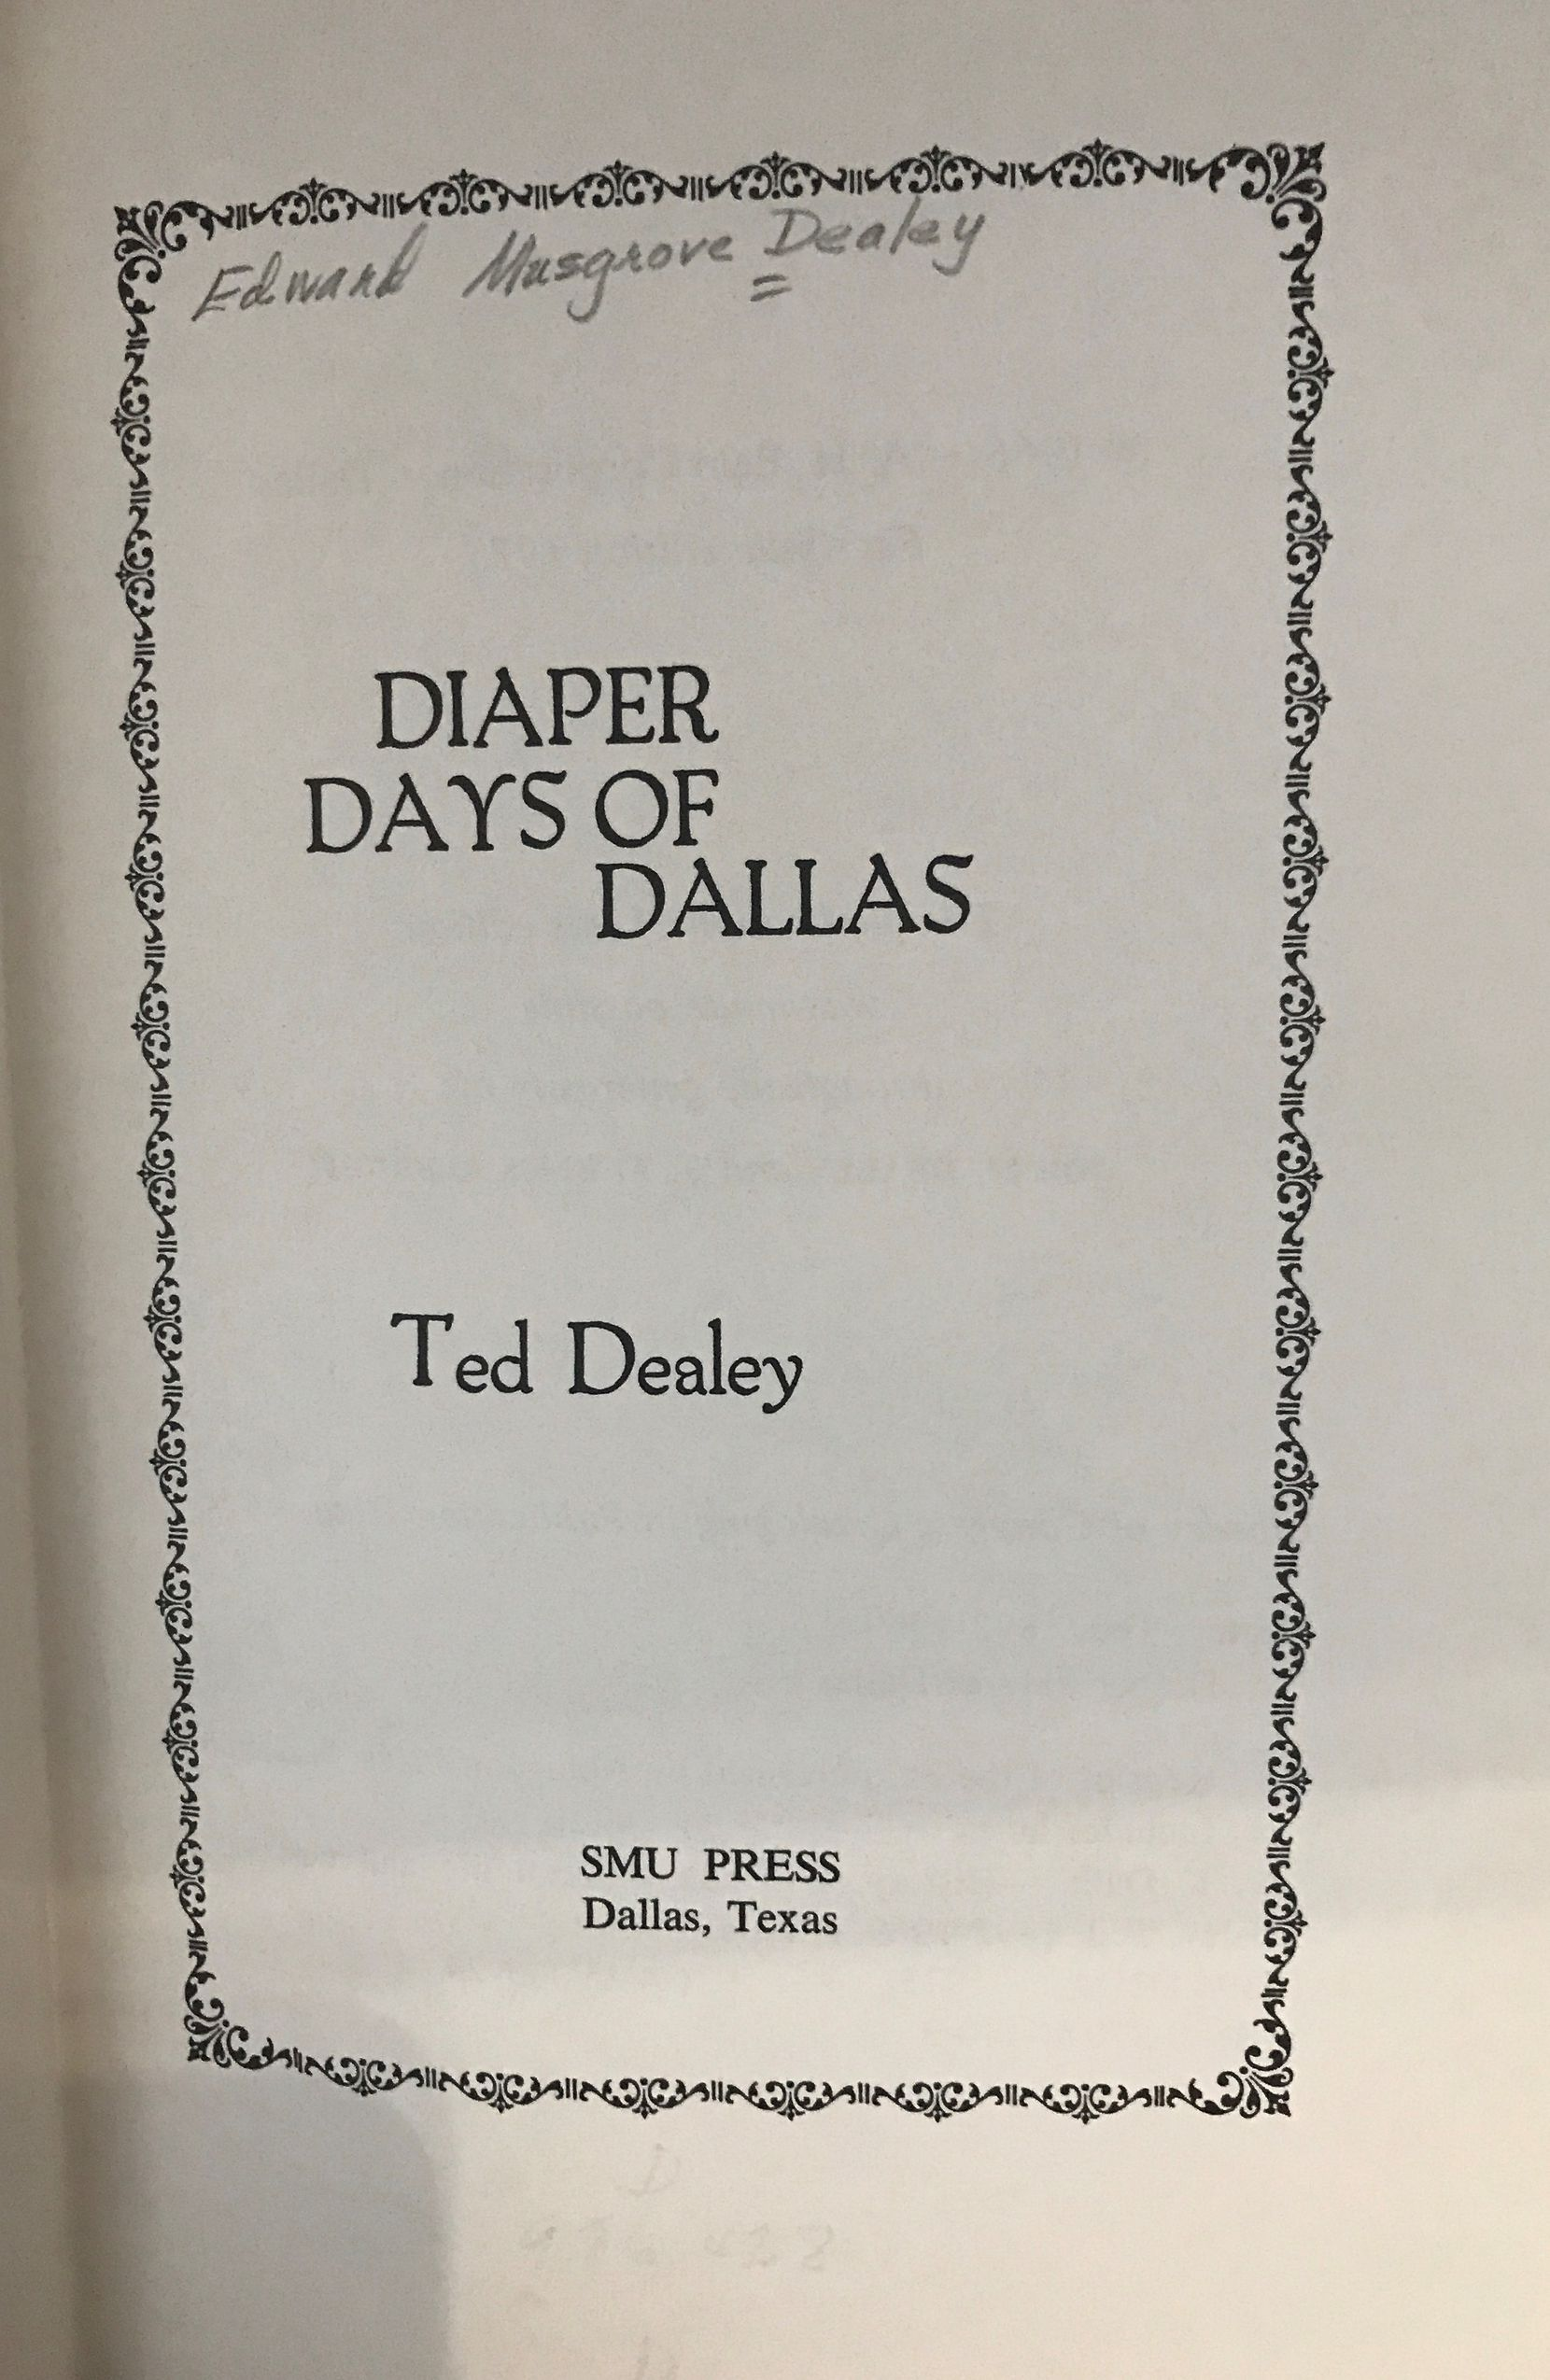 Ted Dealey, son of Dallas Morning News publisher George Bannerman Dealey, penned this book about the city's early history.